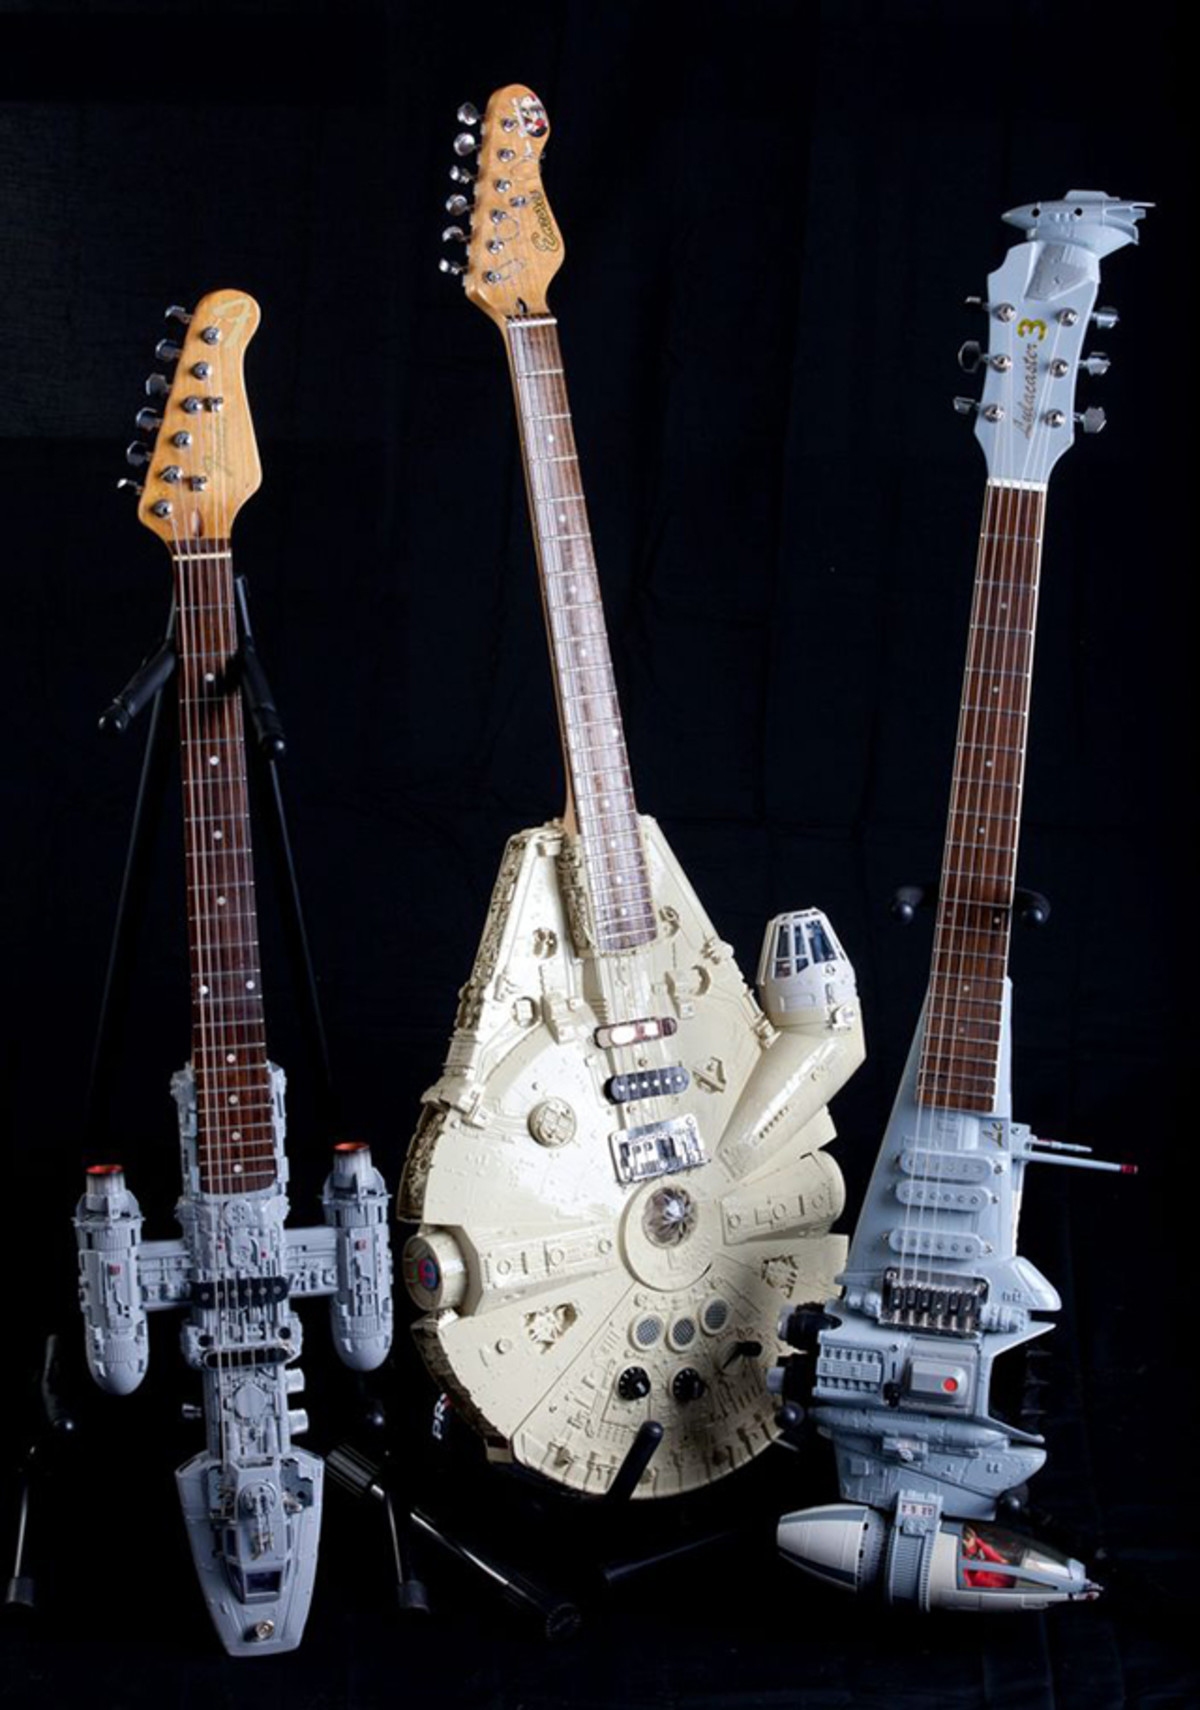 Star Wars Guitars. Best Pun in the Comments Wins... Inb4 we have found the rebel bass